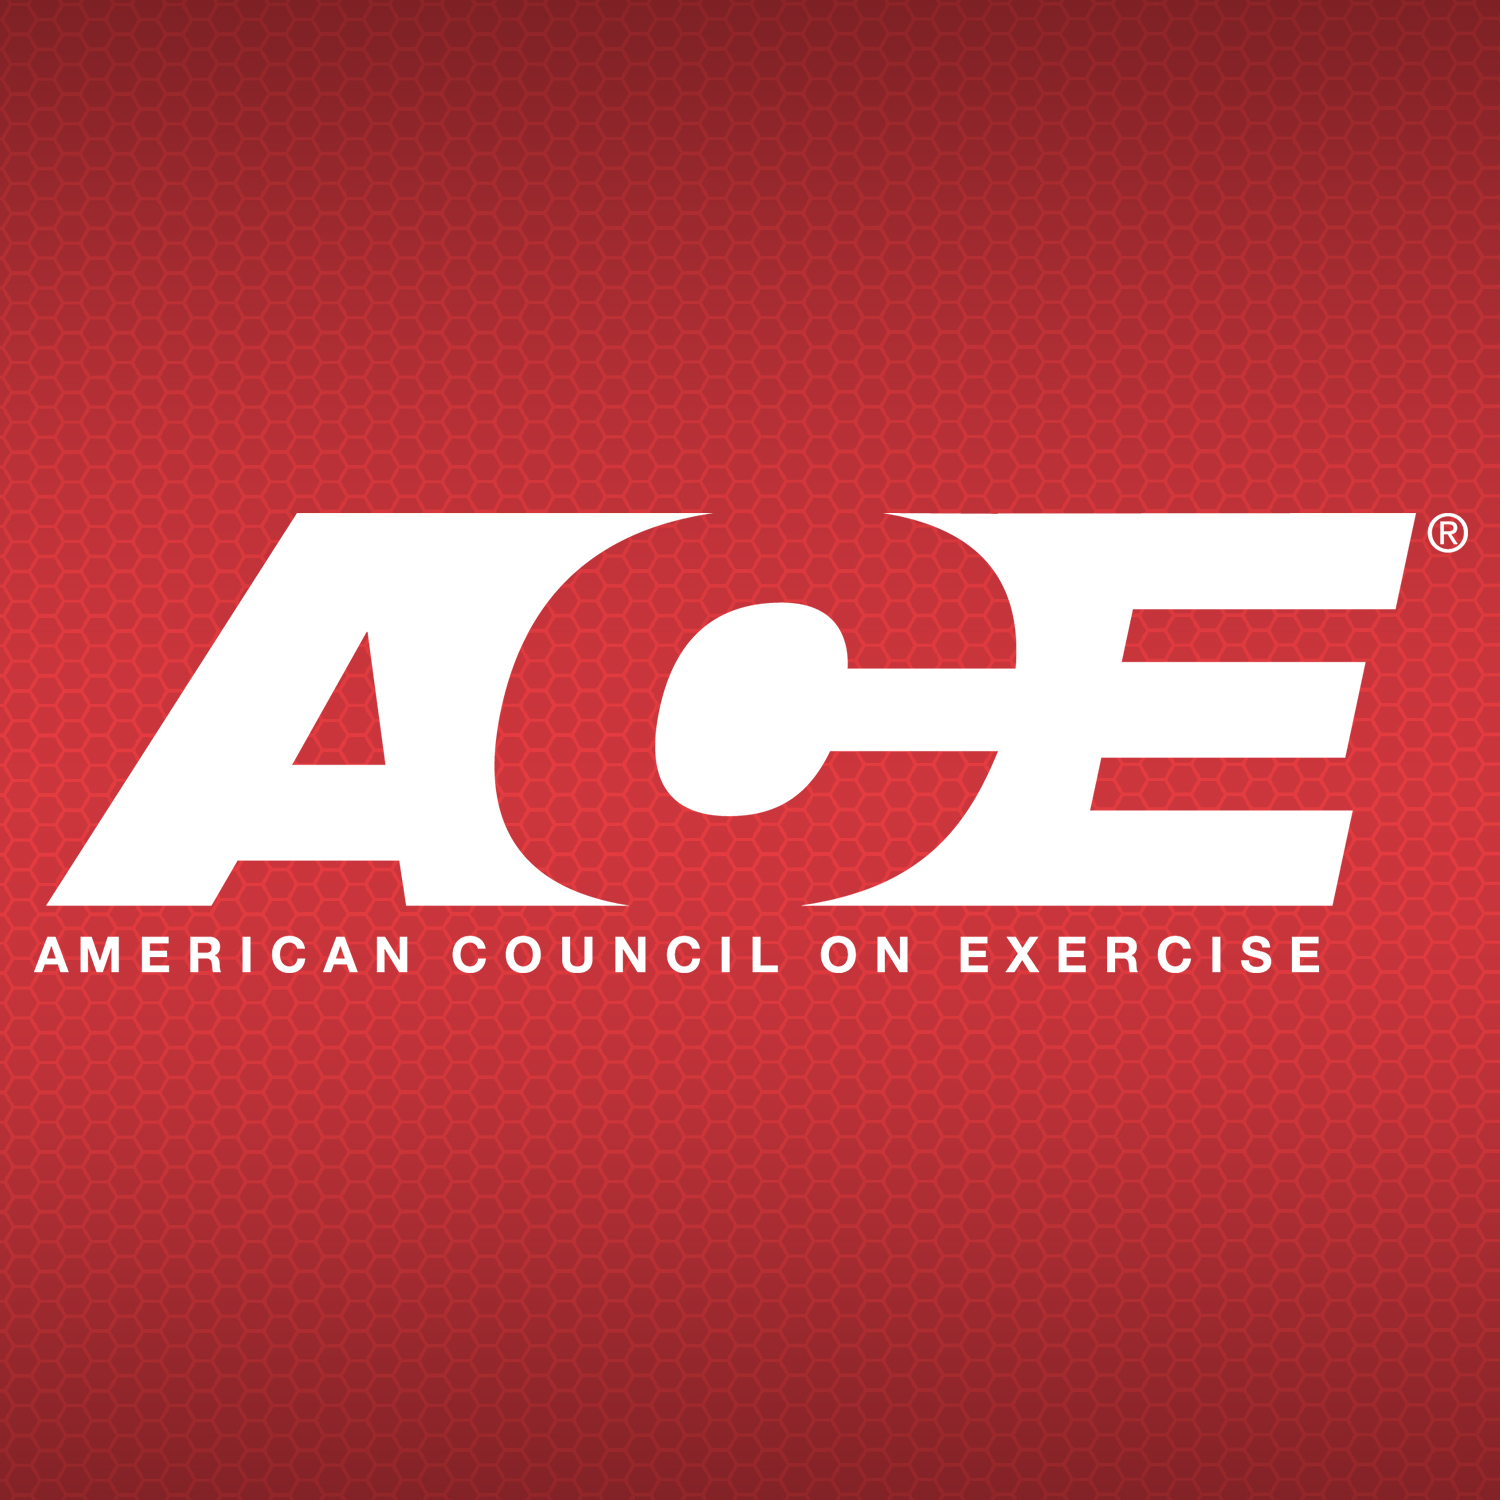 Ace Certified Personal Trainers In Chennai Mobile No9884425000 By